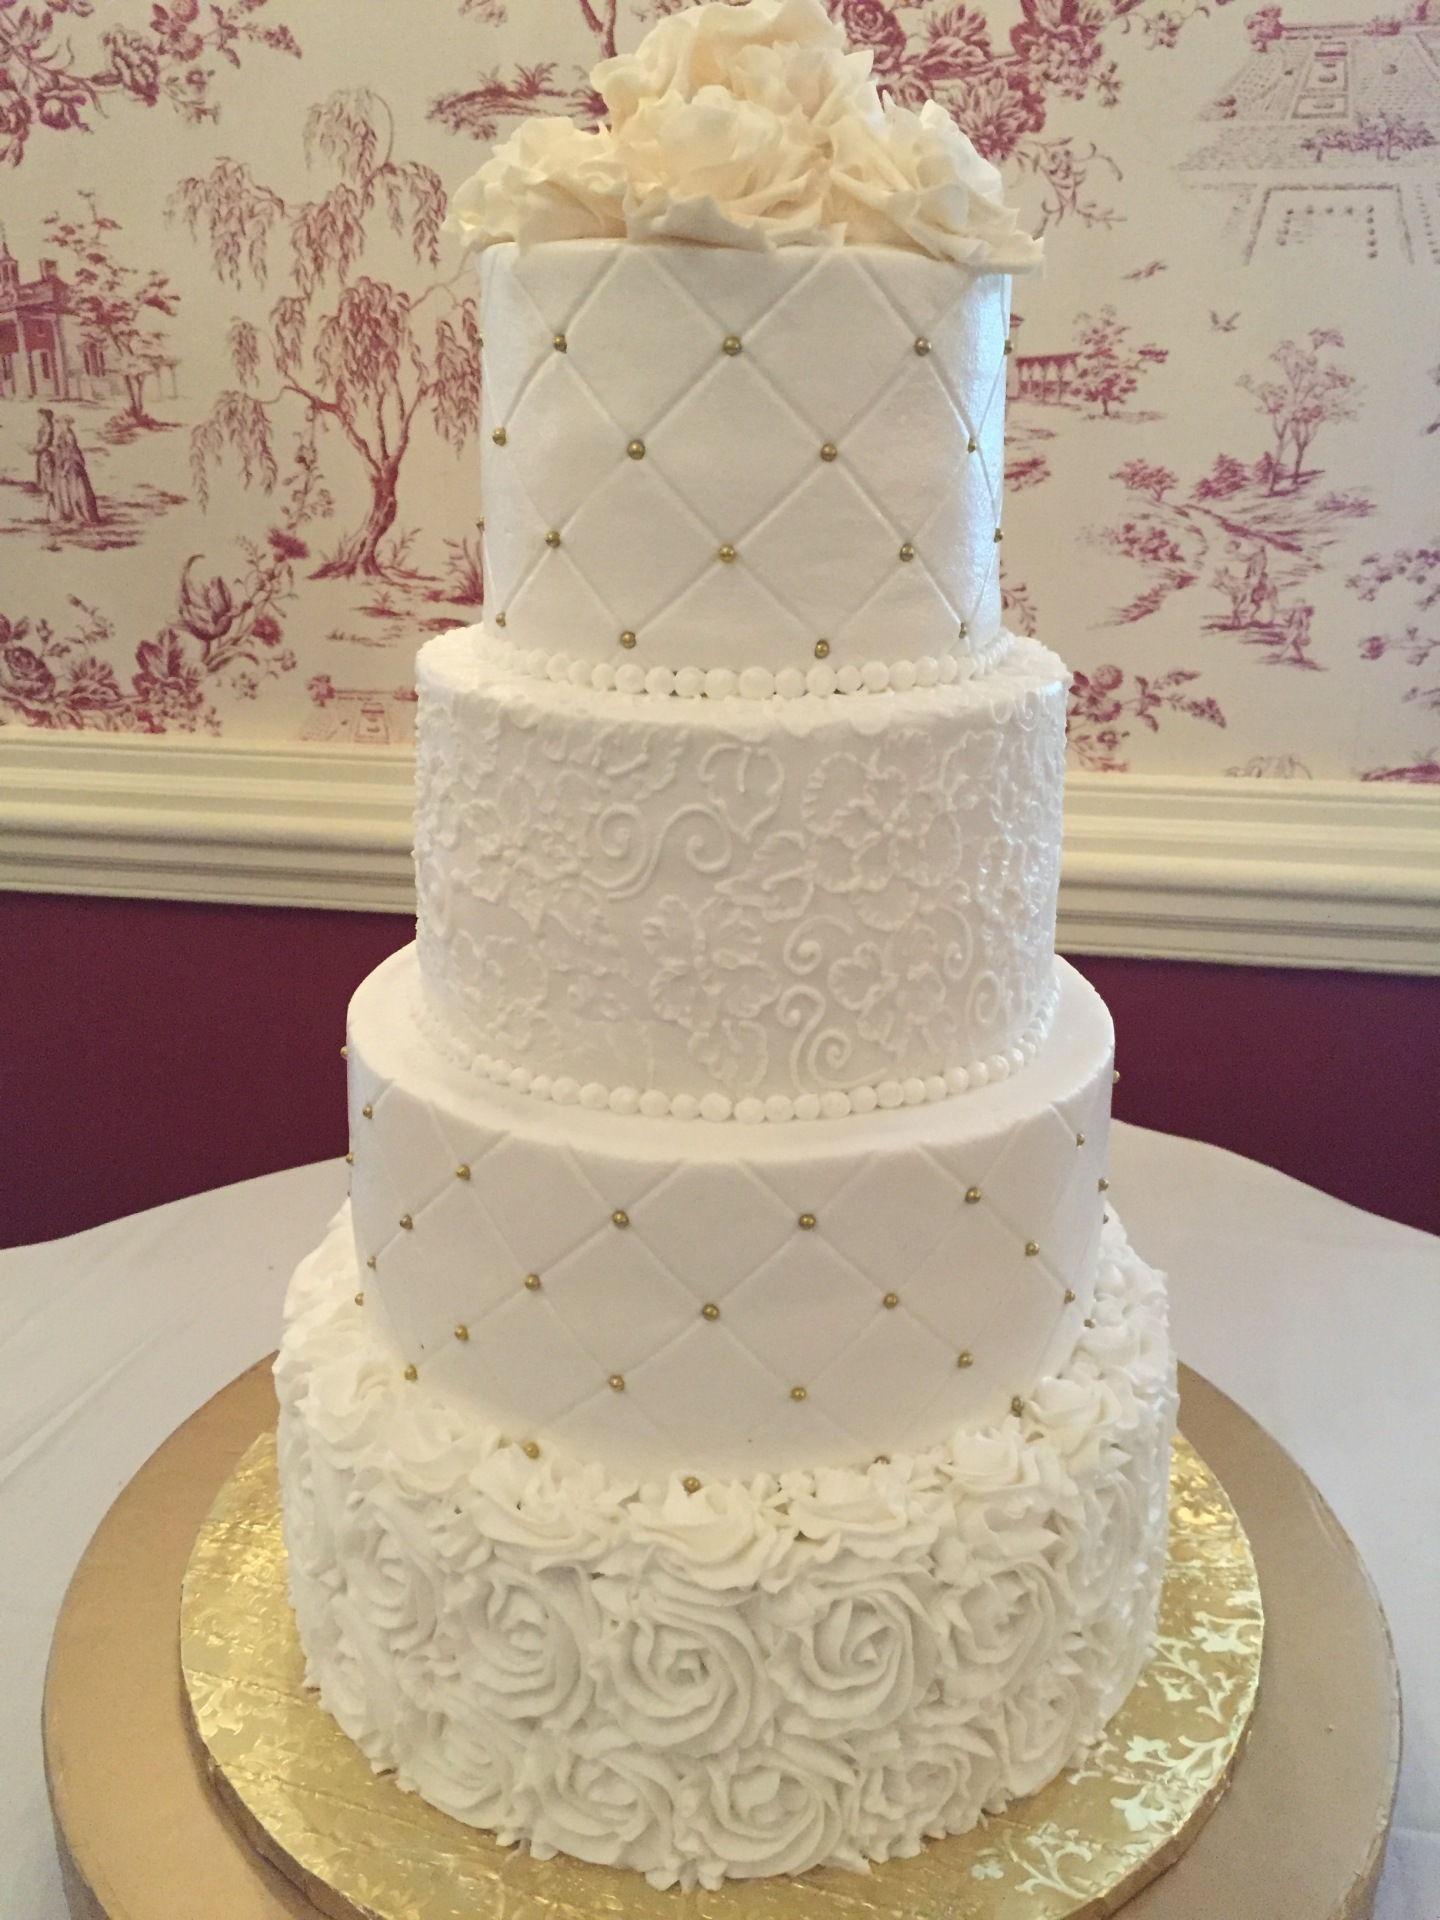 White rosettes and brush embroidary topped with white sugar roses